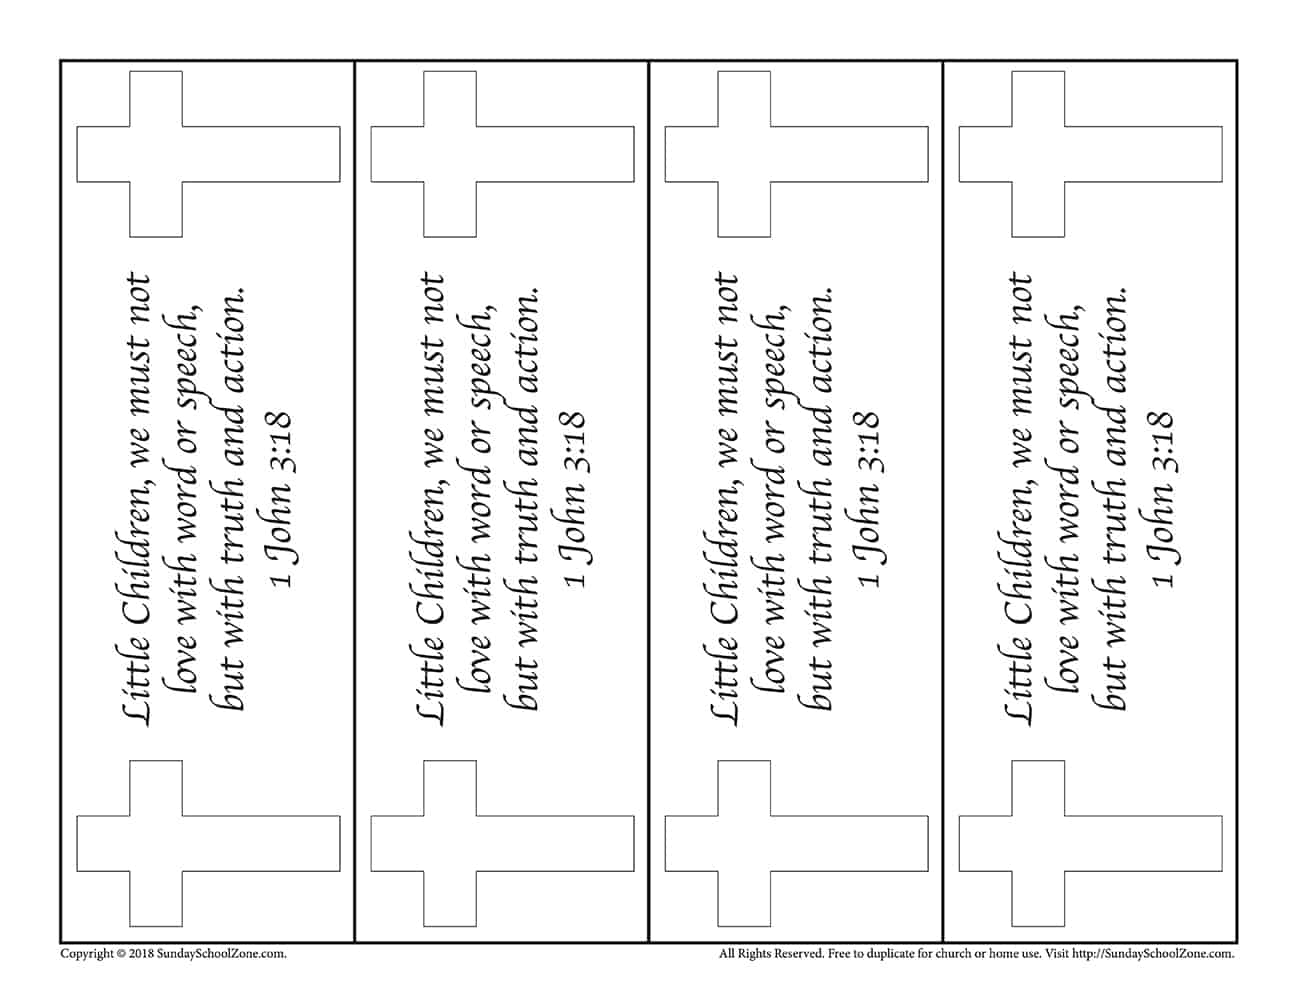 Colorable John 3 16 Bookmark Version 2 On Sunday School Zone